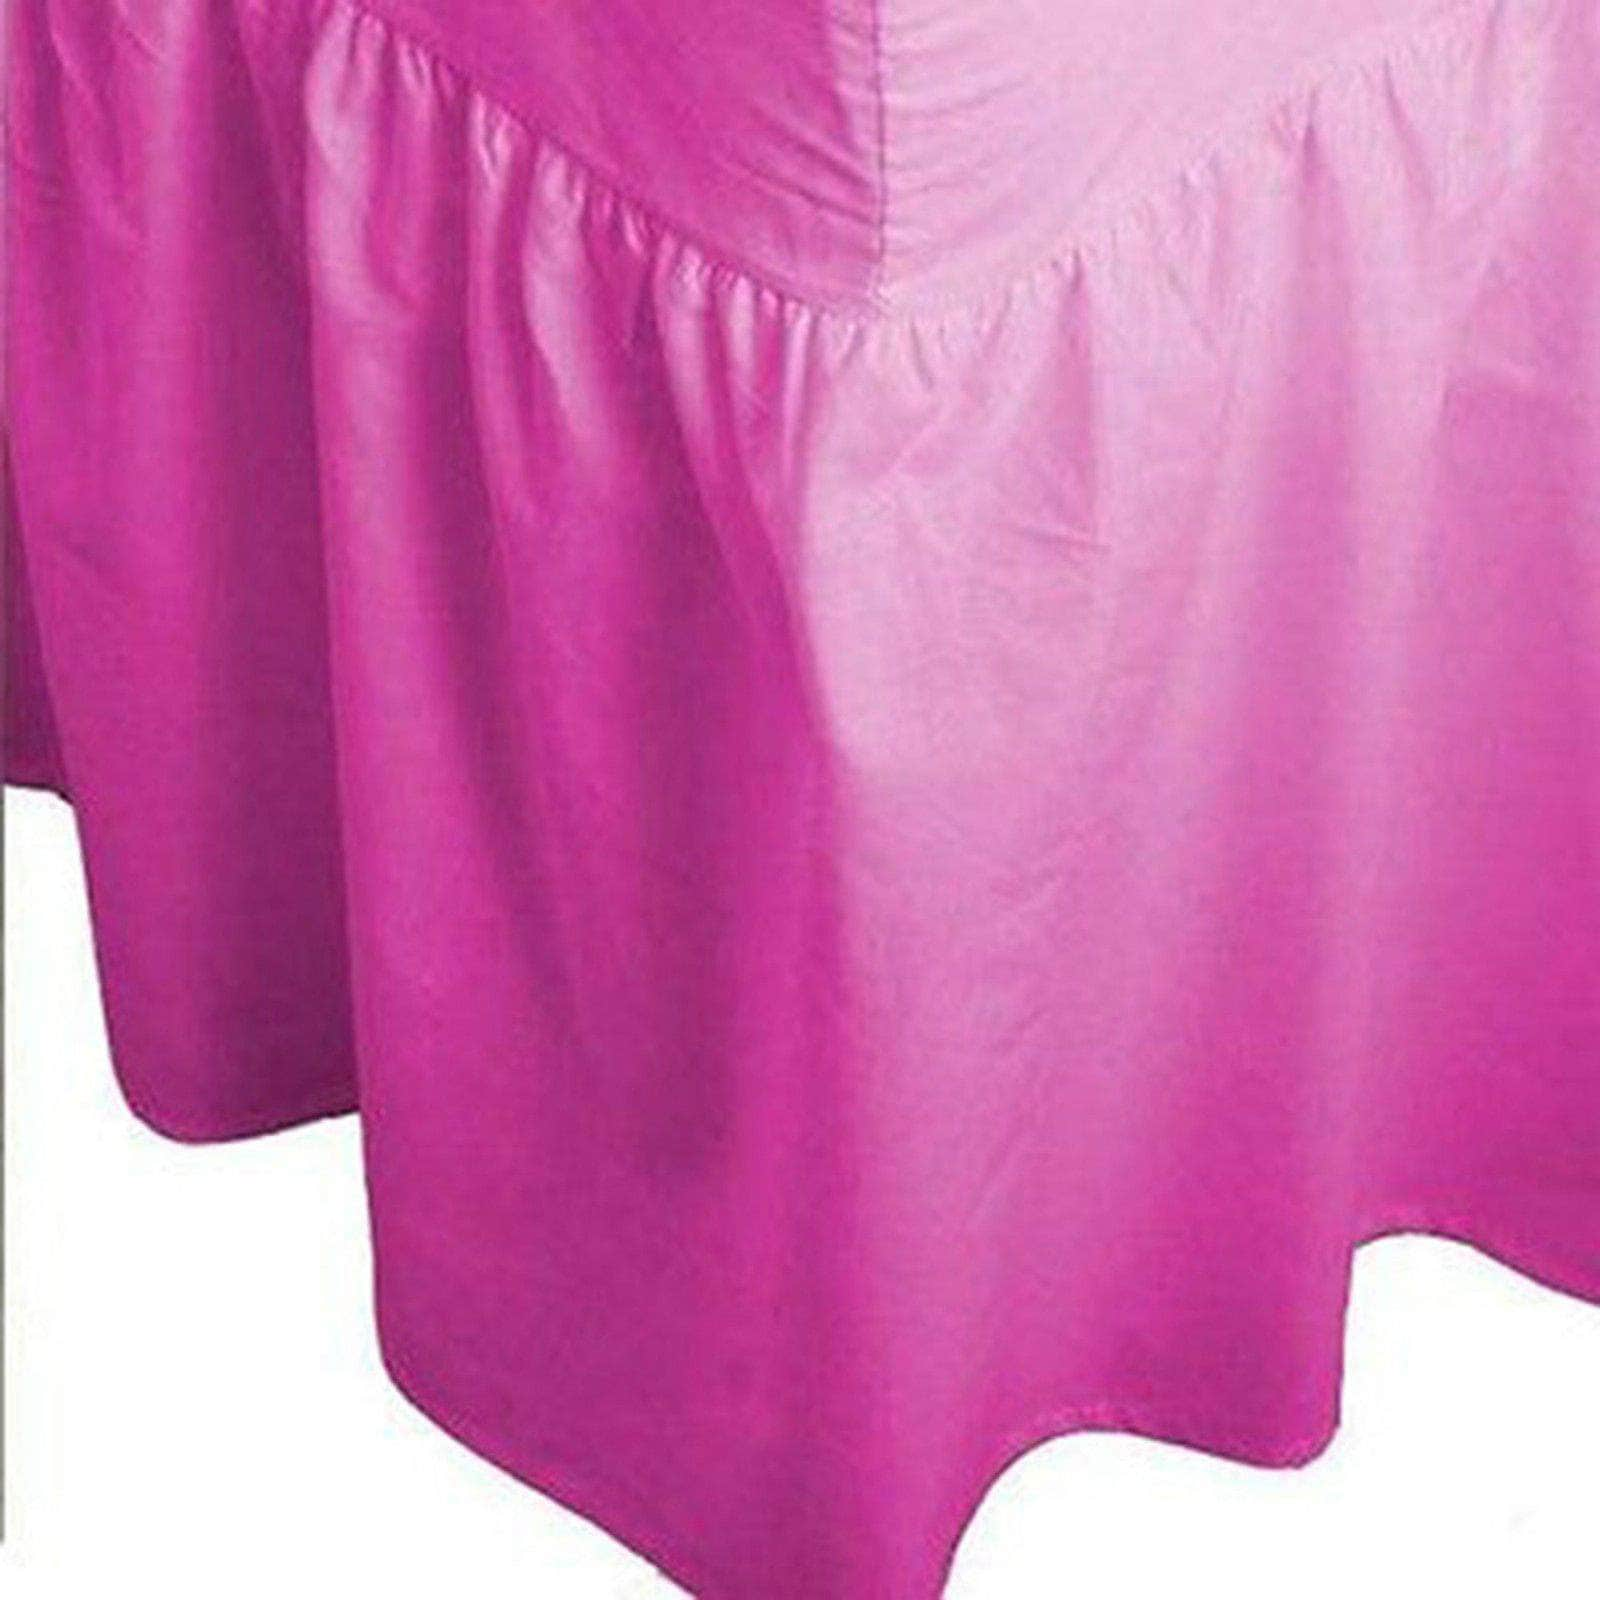 Plain Dyed Fitted Valance Sheet Poly Cotton Bed Sheet In All Sizes - Arlinens